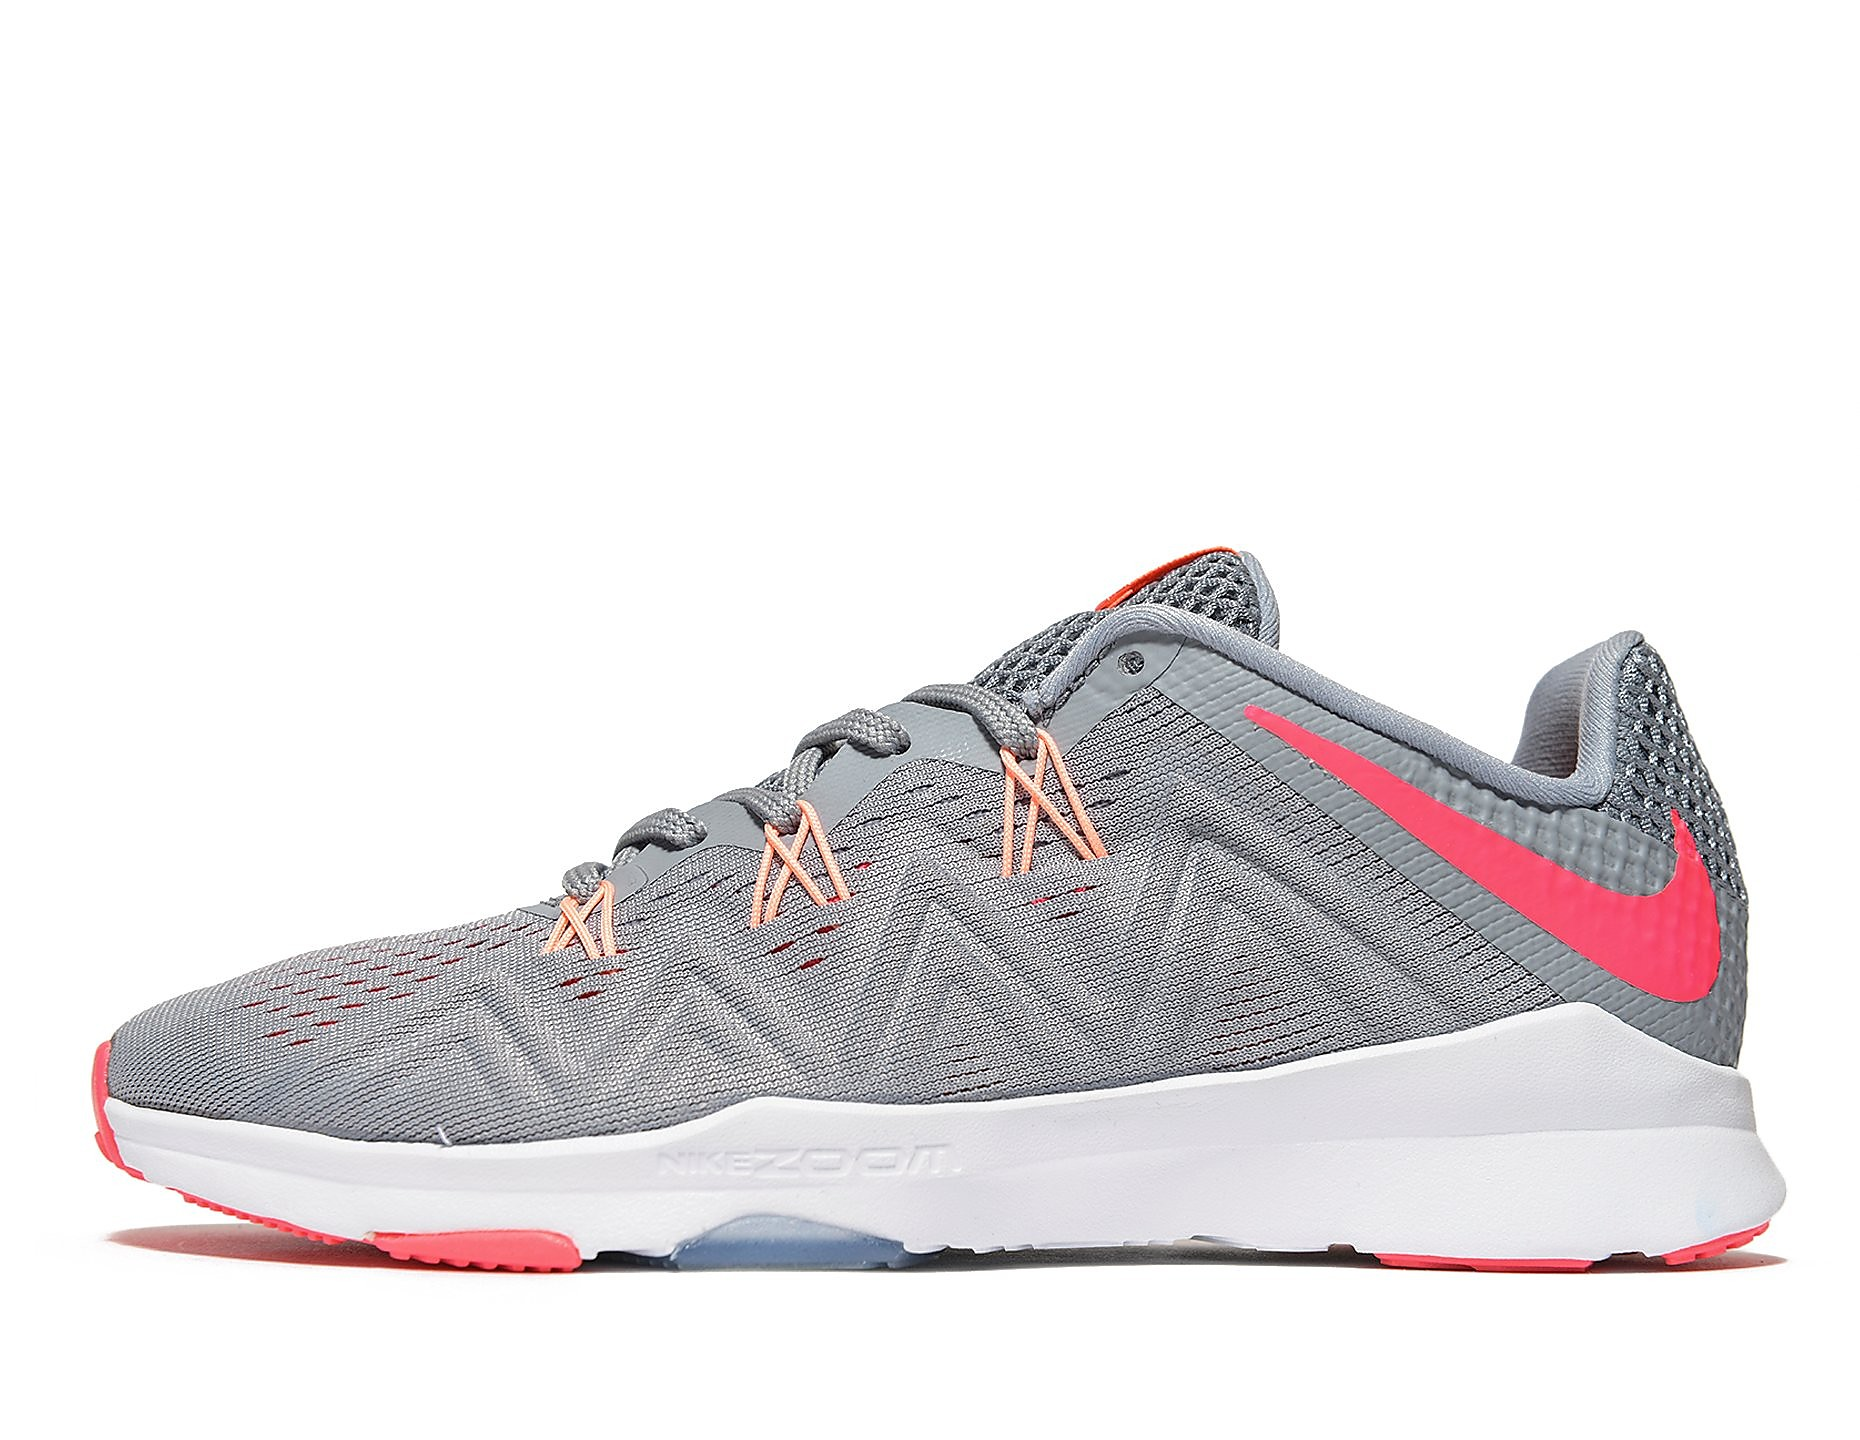 Nike Zoom Condition TR Women's